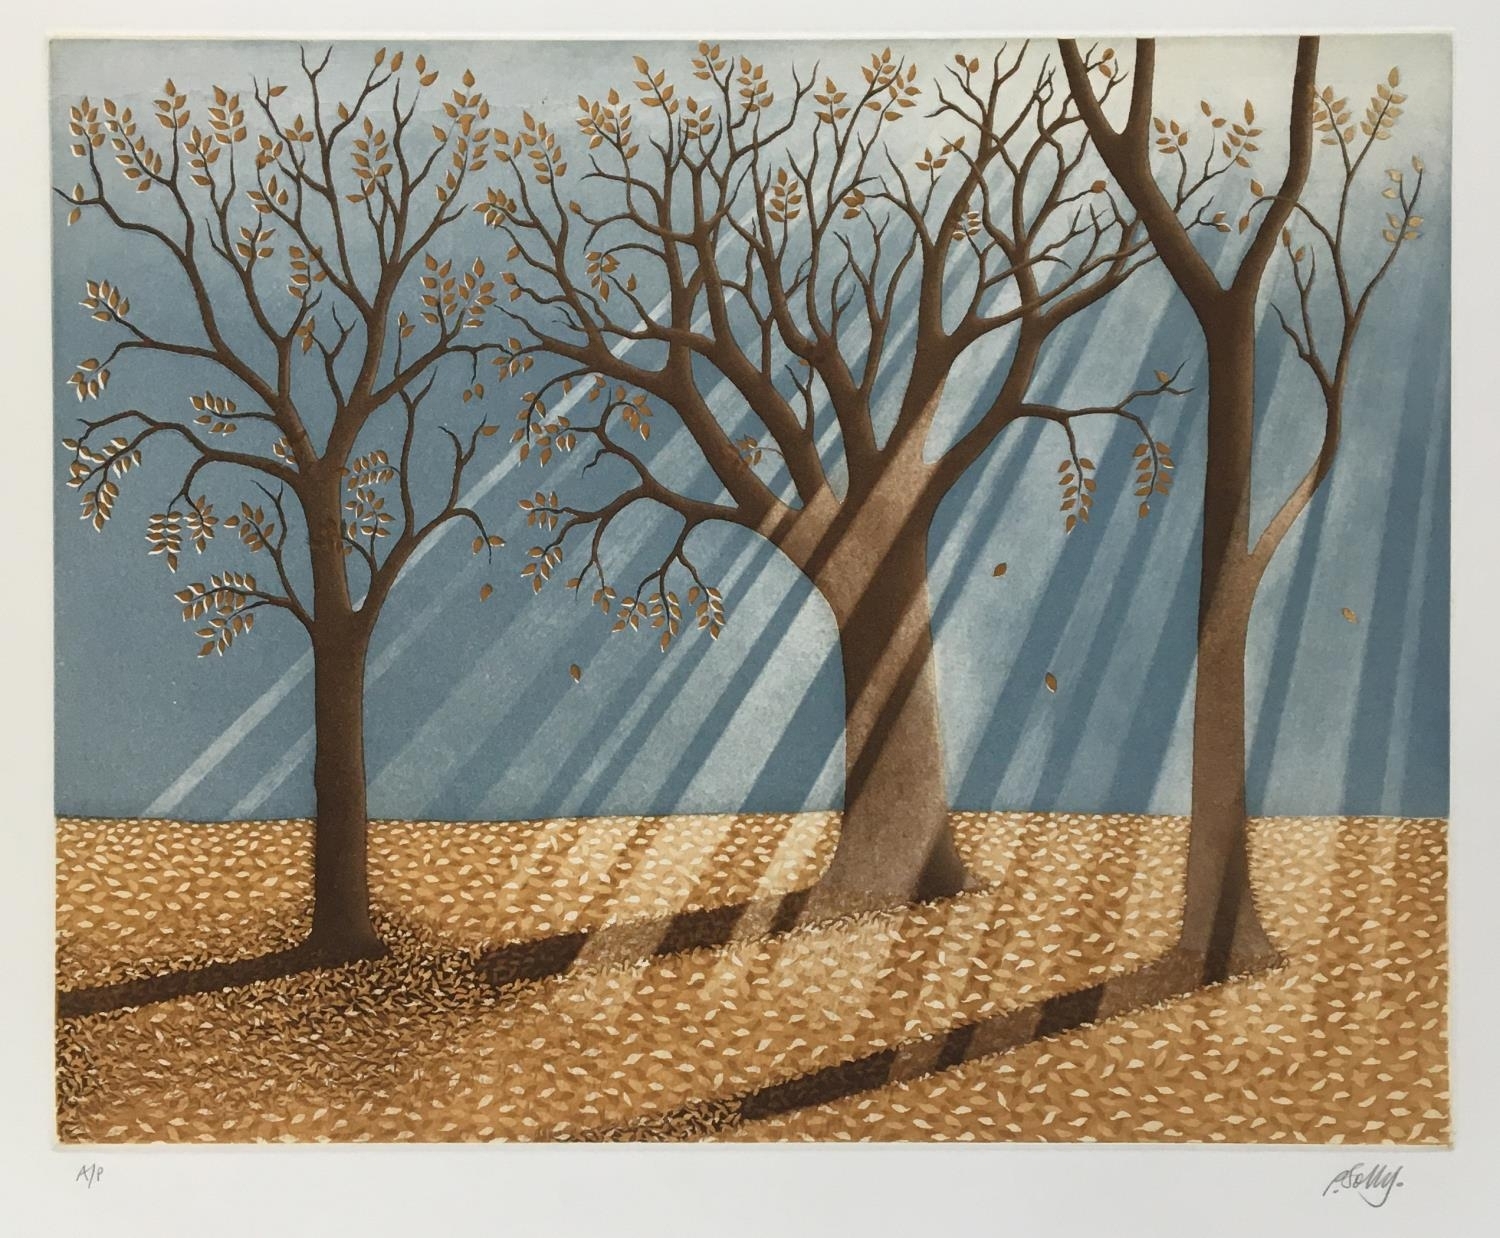 Philip Solly (20th century British school), Untitled, colour etching, artist proof, signed in - Image 2 of 2